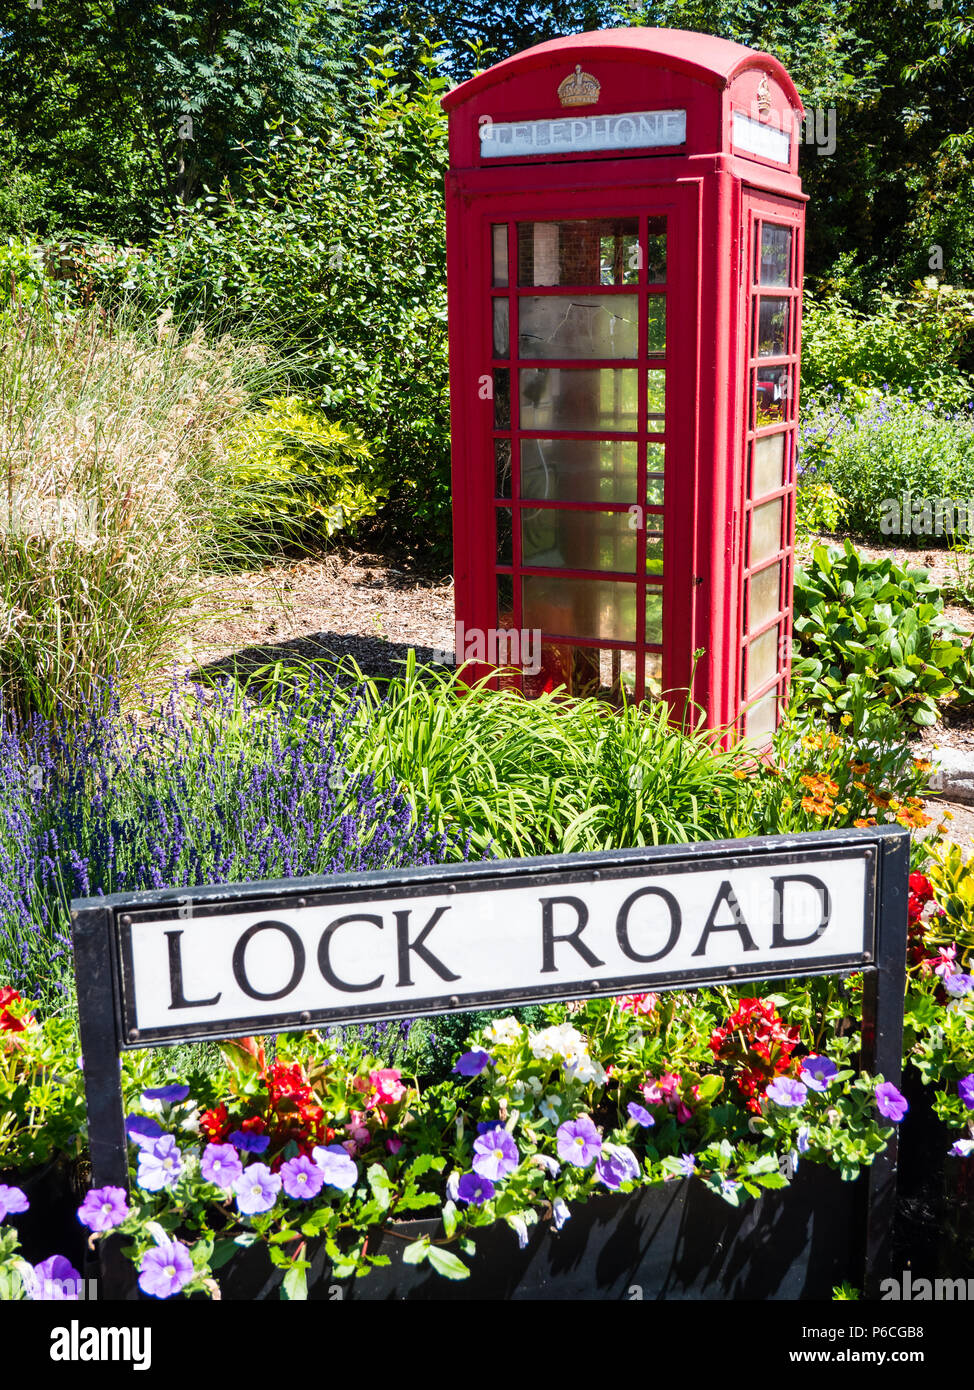 Lock Road Sign, with Flowers, and Red Telephone Box, Marlow, Buckinghamshire, England, UK, GB. - Stock Image